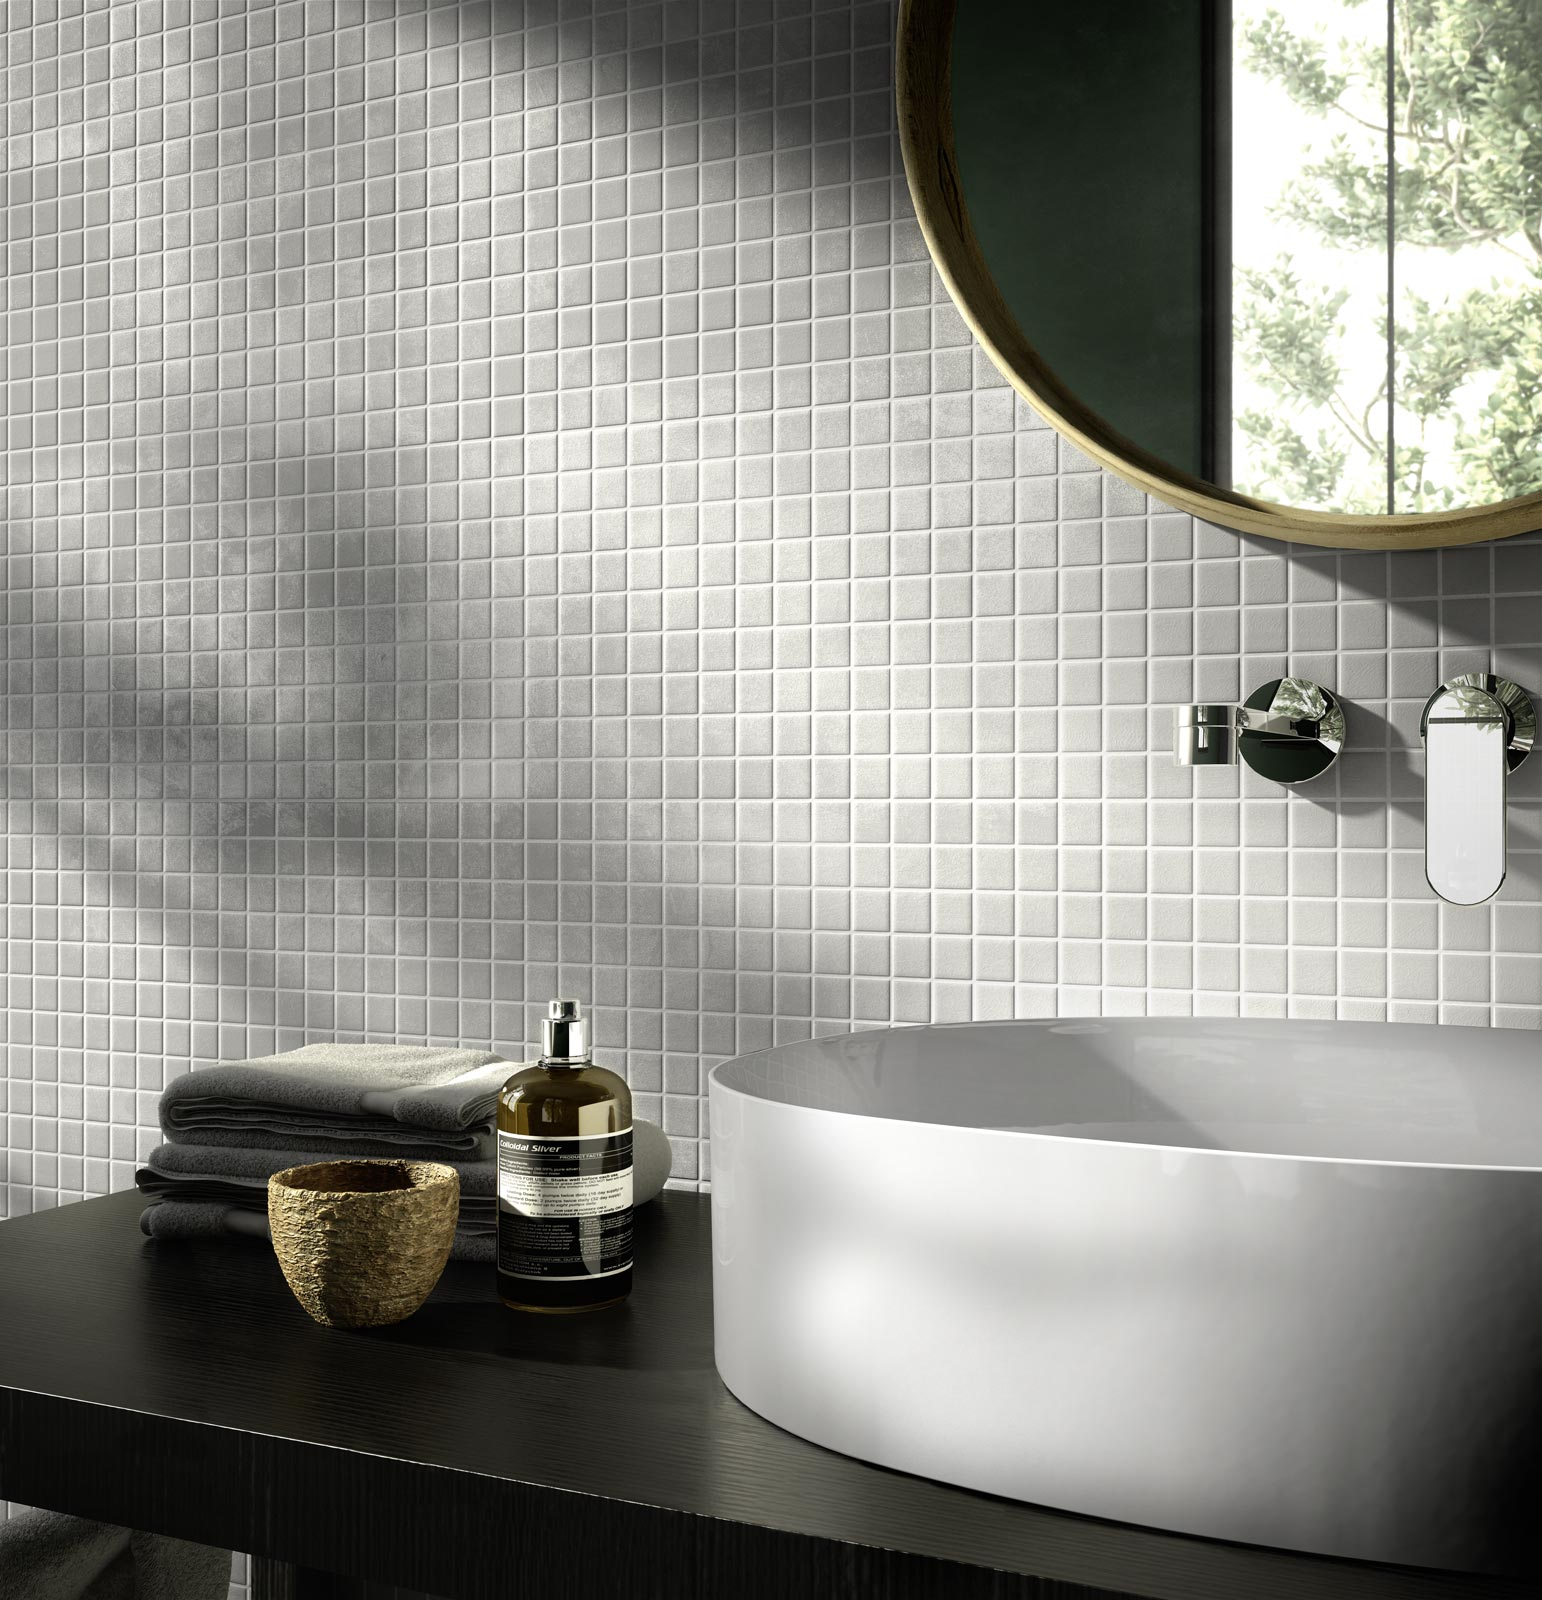 Elegant Hello Friends Were Remodeling A Small 5x8 Hall Bathroom That My Five Sons Will Be Using Were Trying To Go For Elegant And Easy To Clean With A Subtle Nautical Theme Weve Decided On The Following Kohler White Bellwether Tub Clean